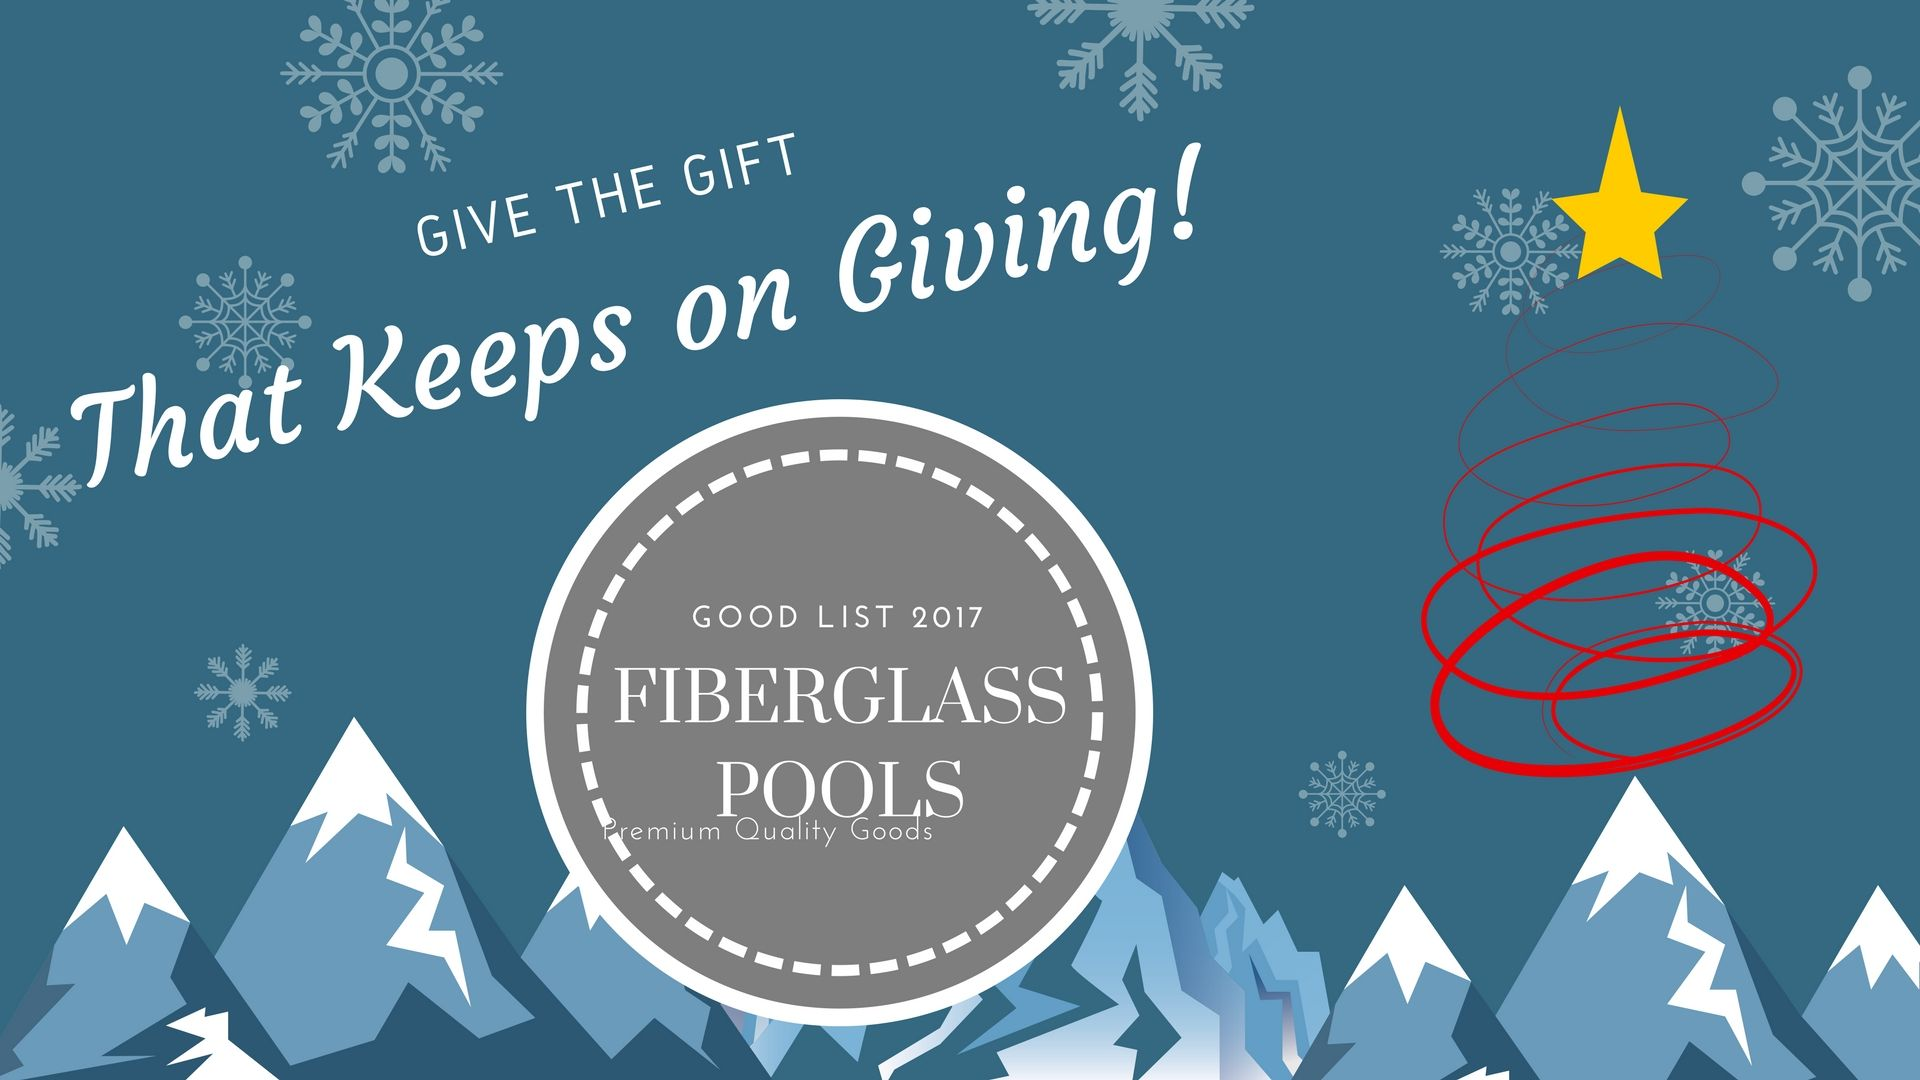 Give the t that keeps on giving a custom fiberglass pool for the